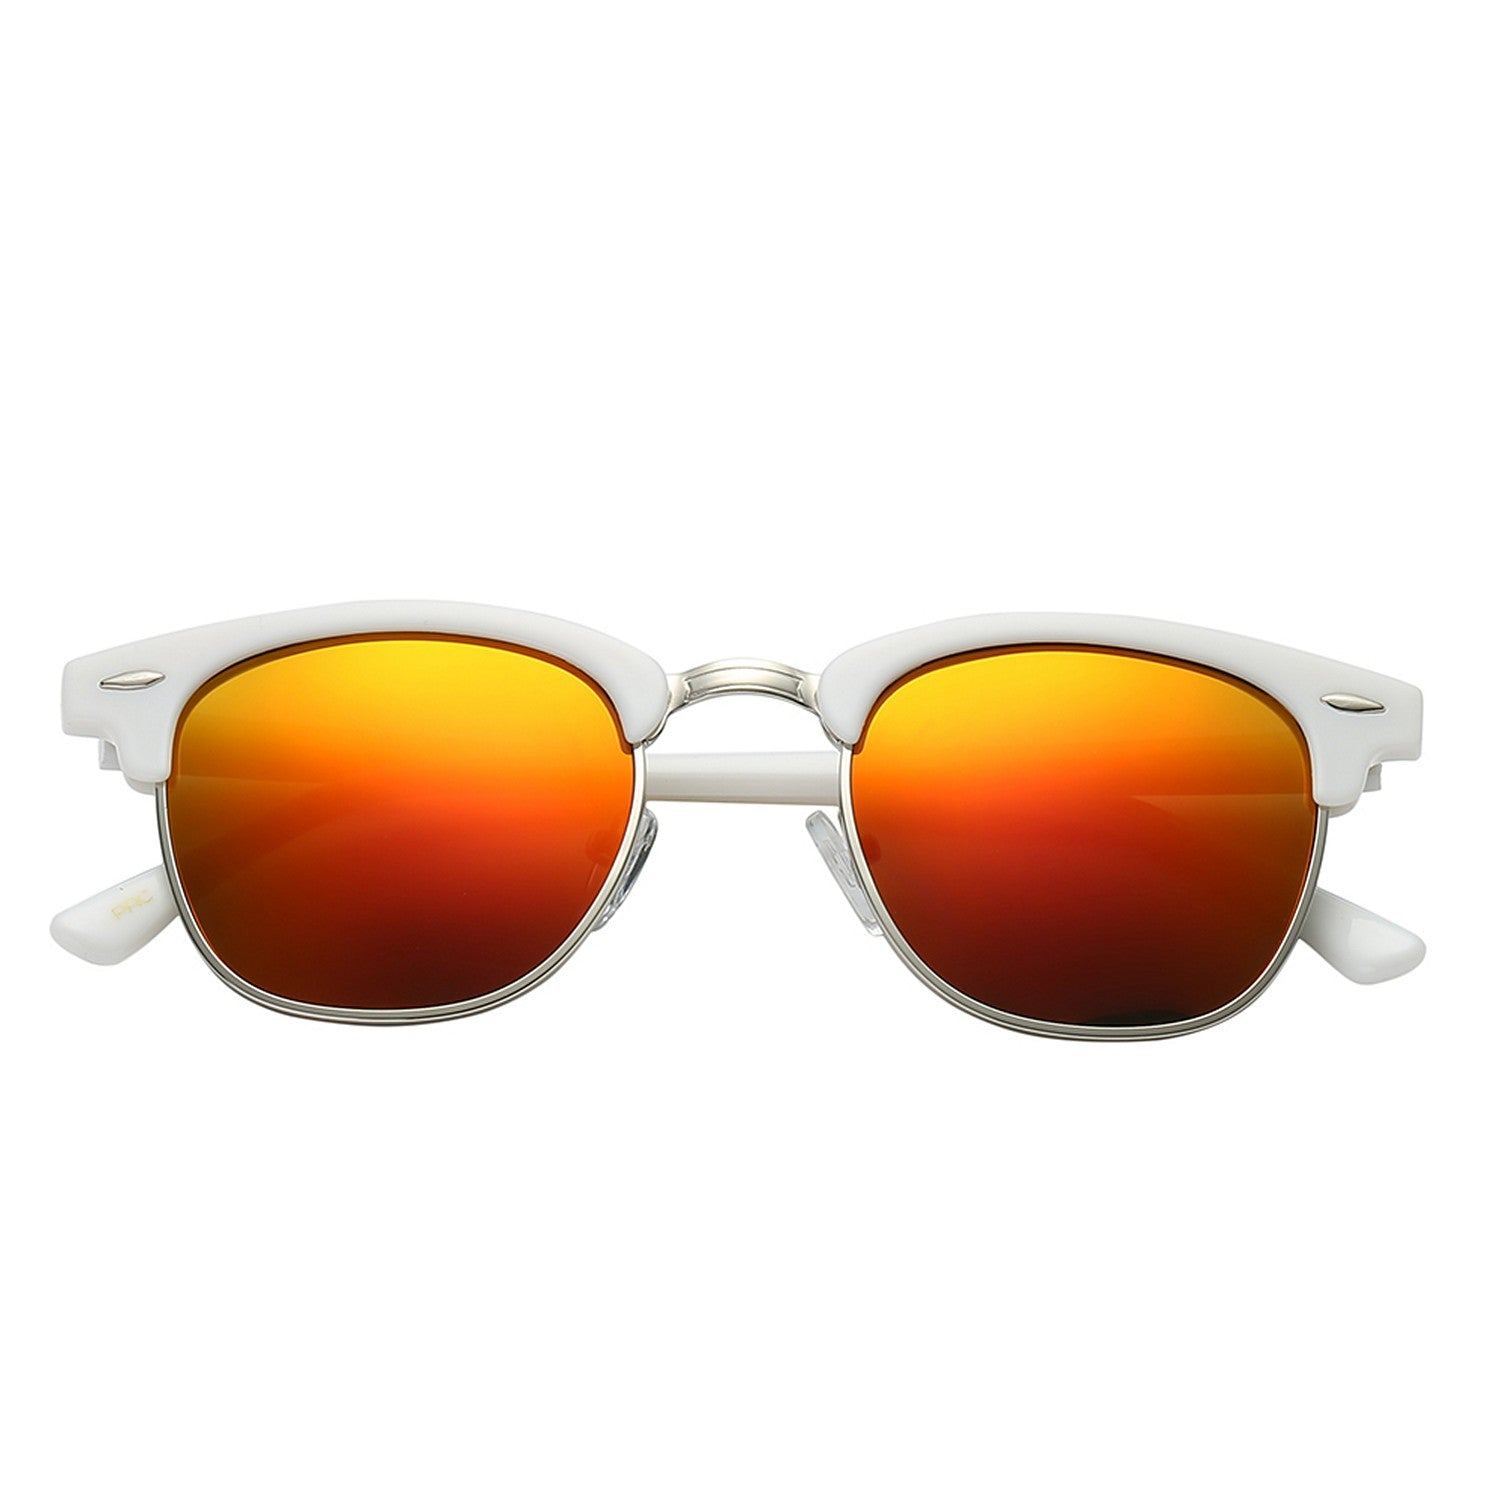 Polarspex Polarized Malcom Half Frame Semi-Rimless Style Unisex Sunglasses with Gloss White Frames and Lava Red Lenses